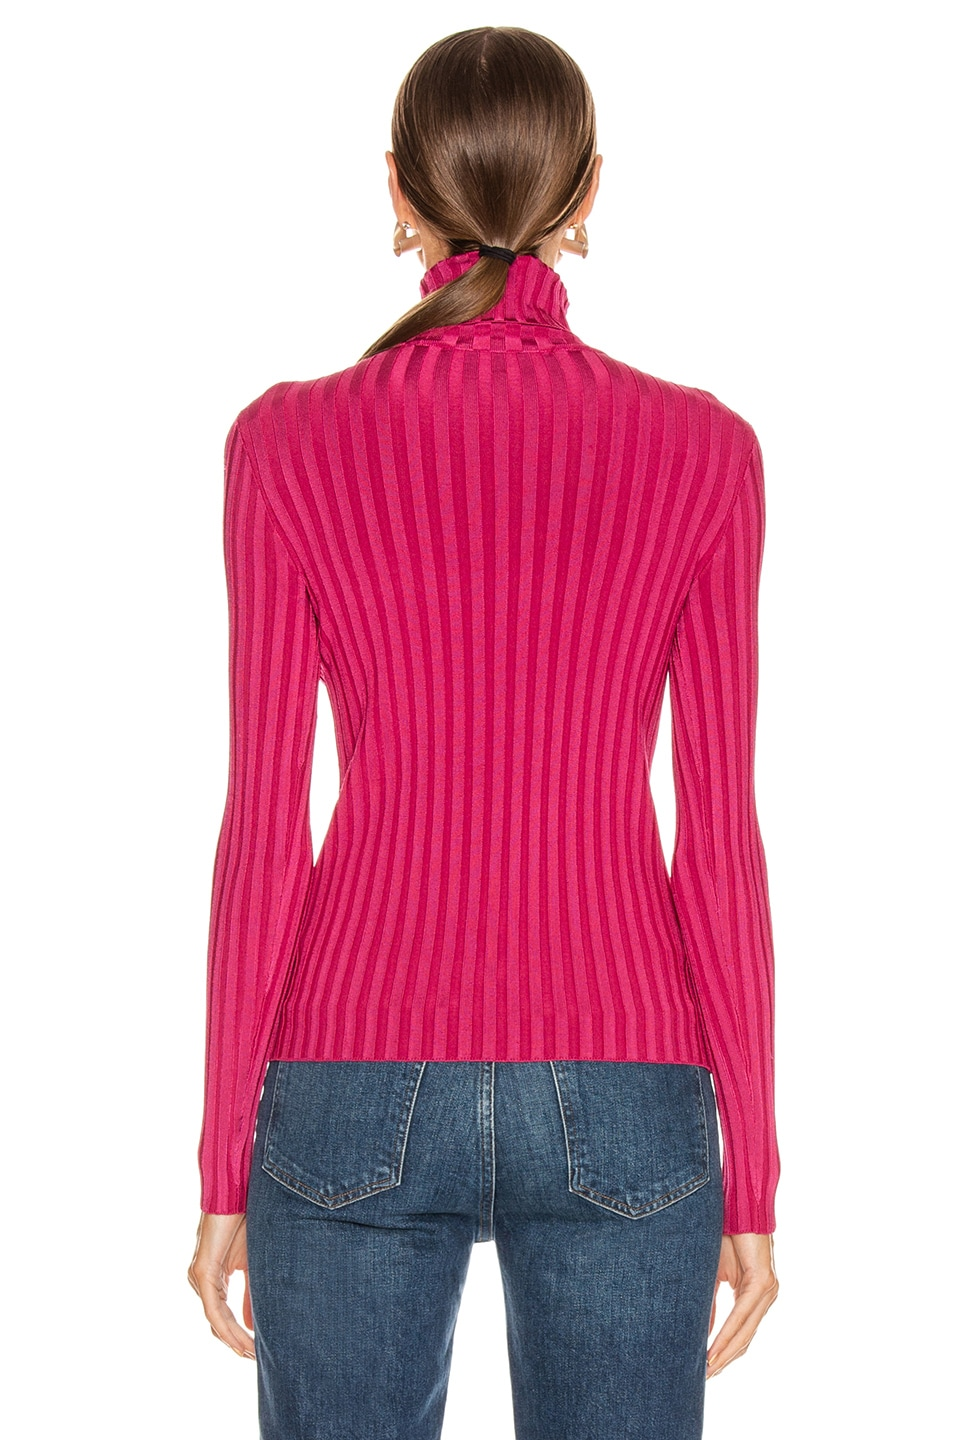 Image 3 of Veronica Beard Nellie Turtleneck Pullover Top in Berry Berry